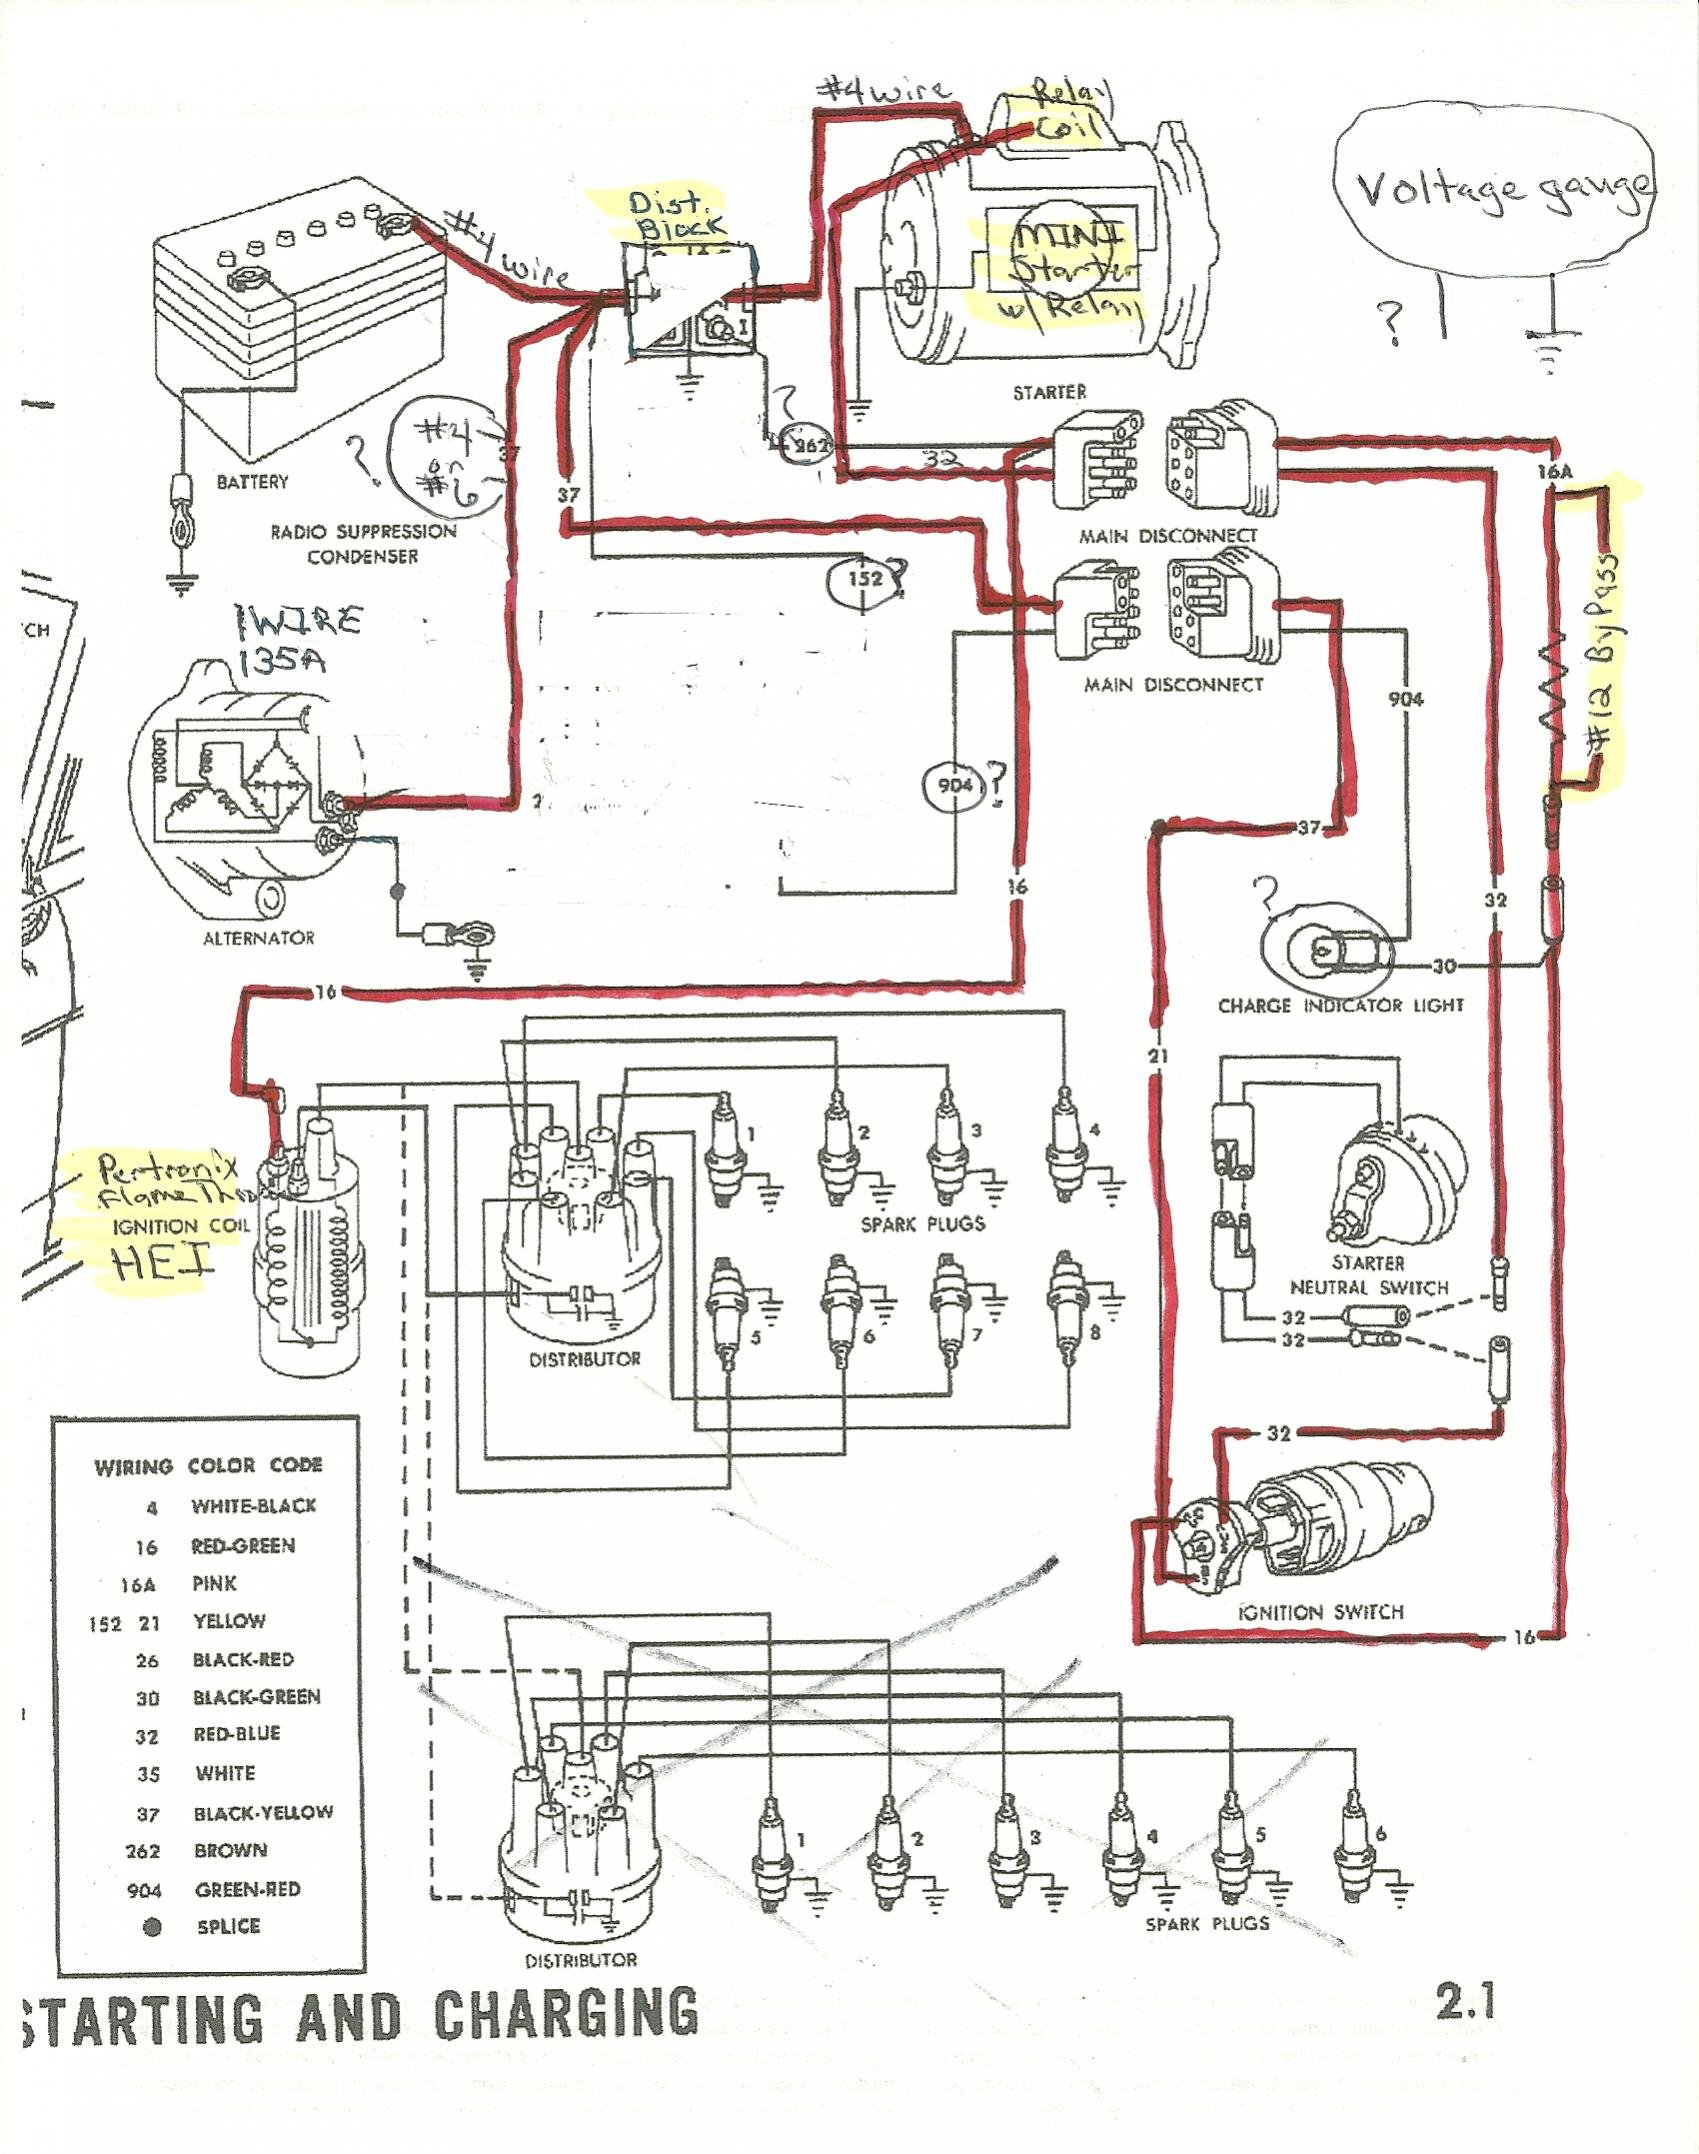 wiring diagram for a 1970 ford mustang the wiring diagram 1969 ford mustang alternator wiring diagram 1969 wiring wiring diagram